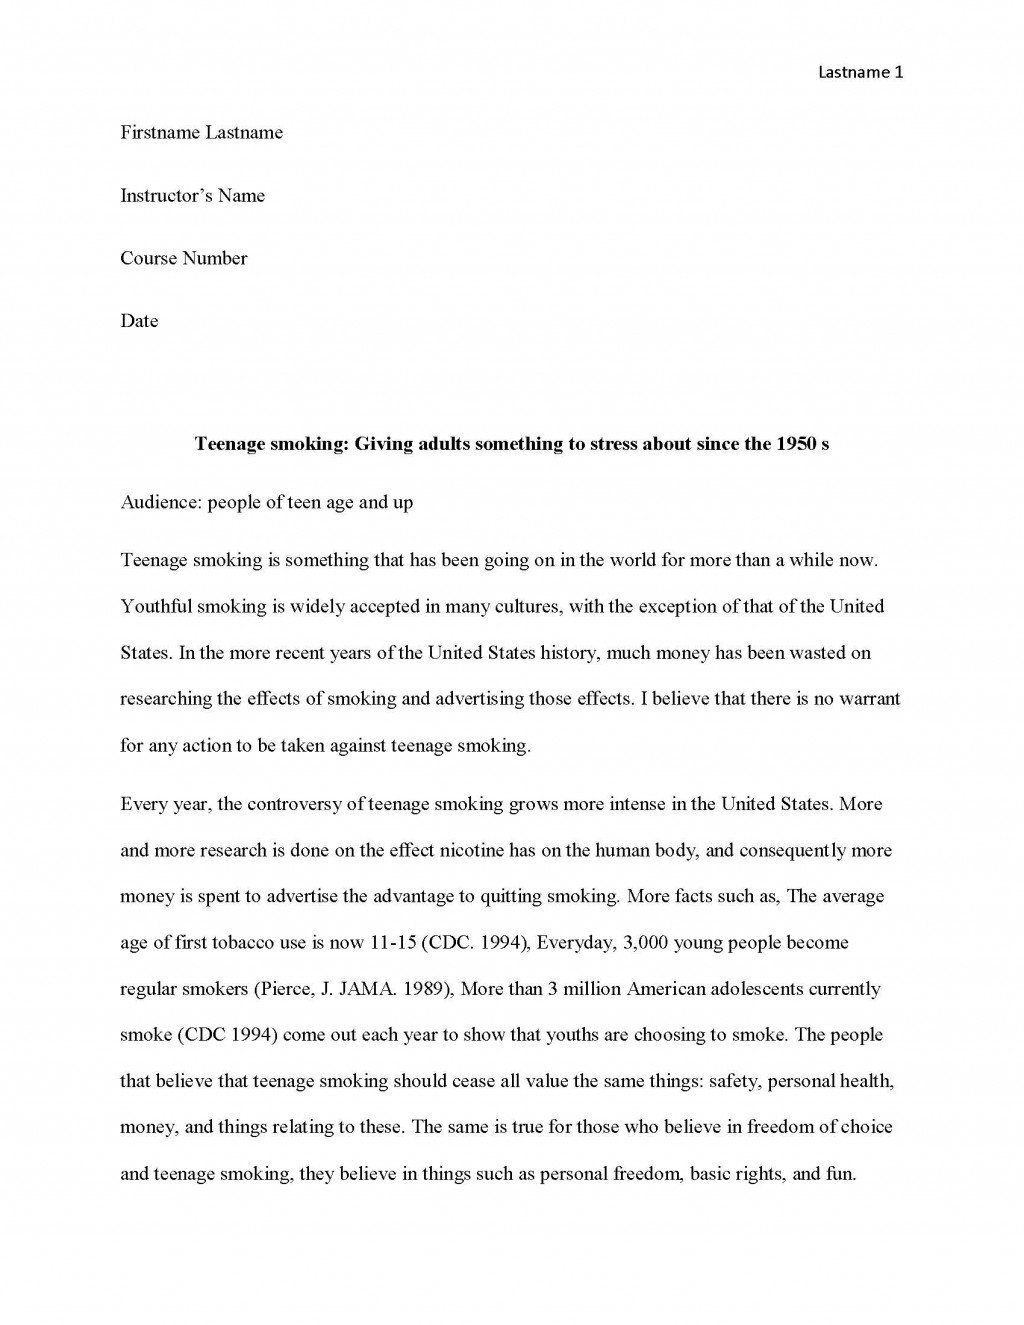 015 Peace Essay Teen Smoking Free Sample Page 1 Rare In Simple English Contest 2019 Topics Large